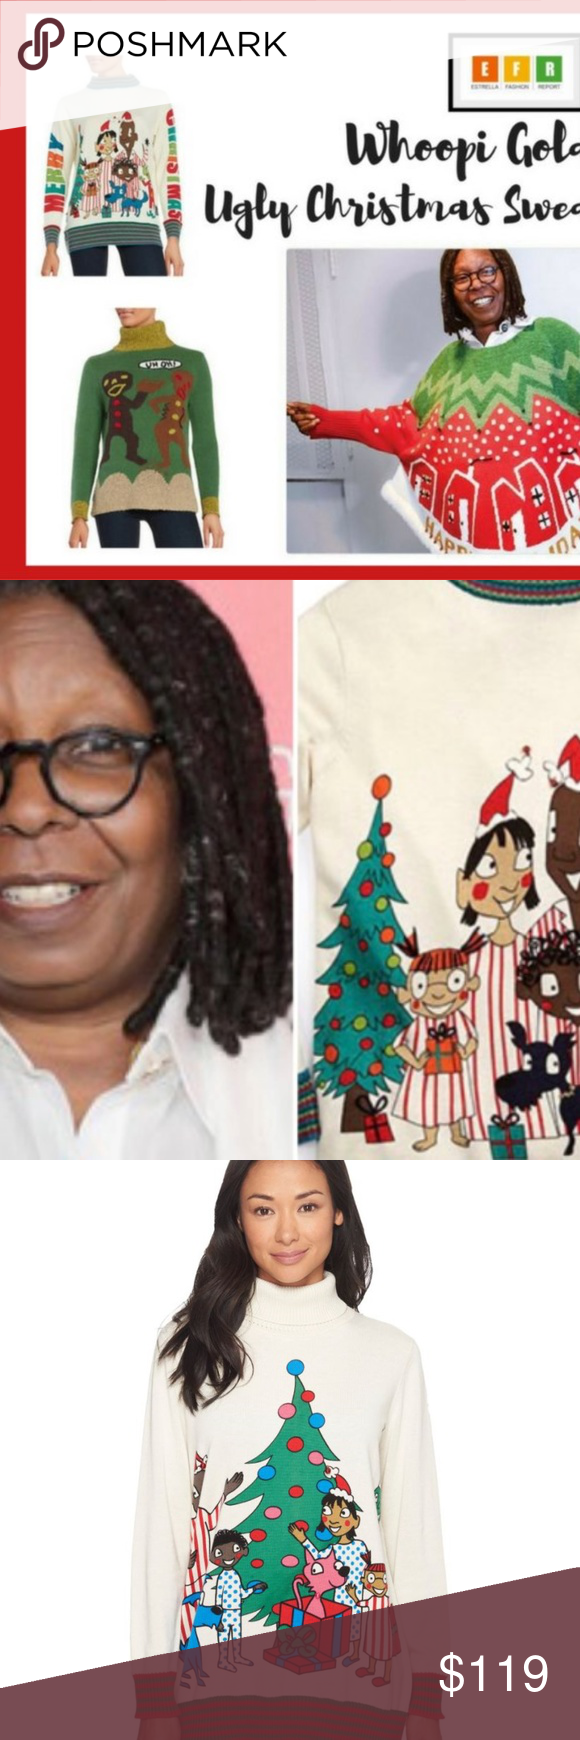 Rare Whoopi Goldberg Elf Ugly Christmas Sweater Nwt In 2018 My